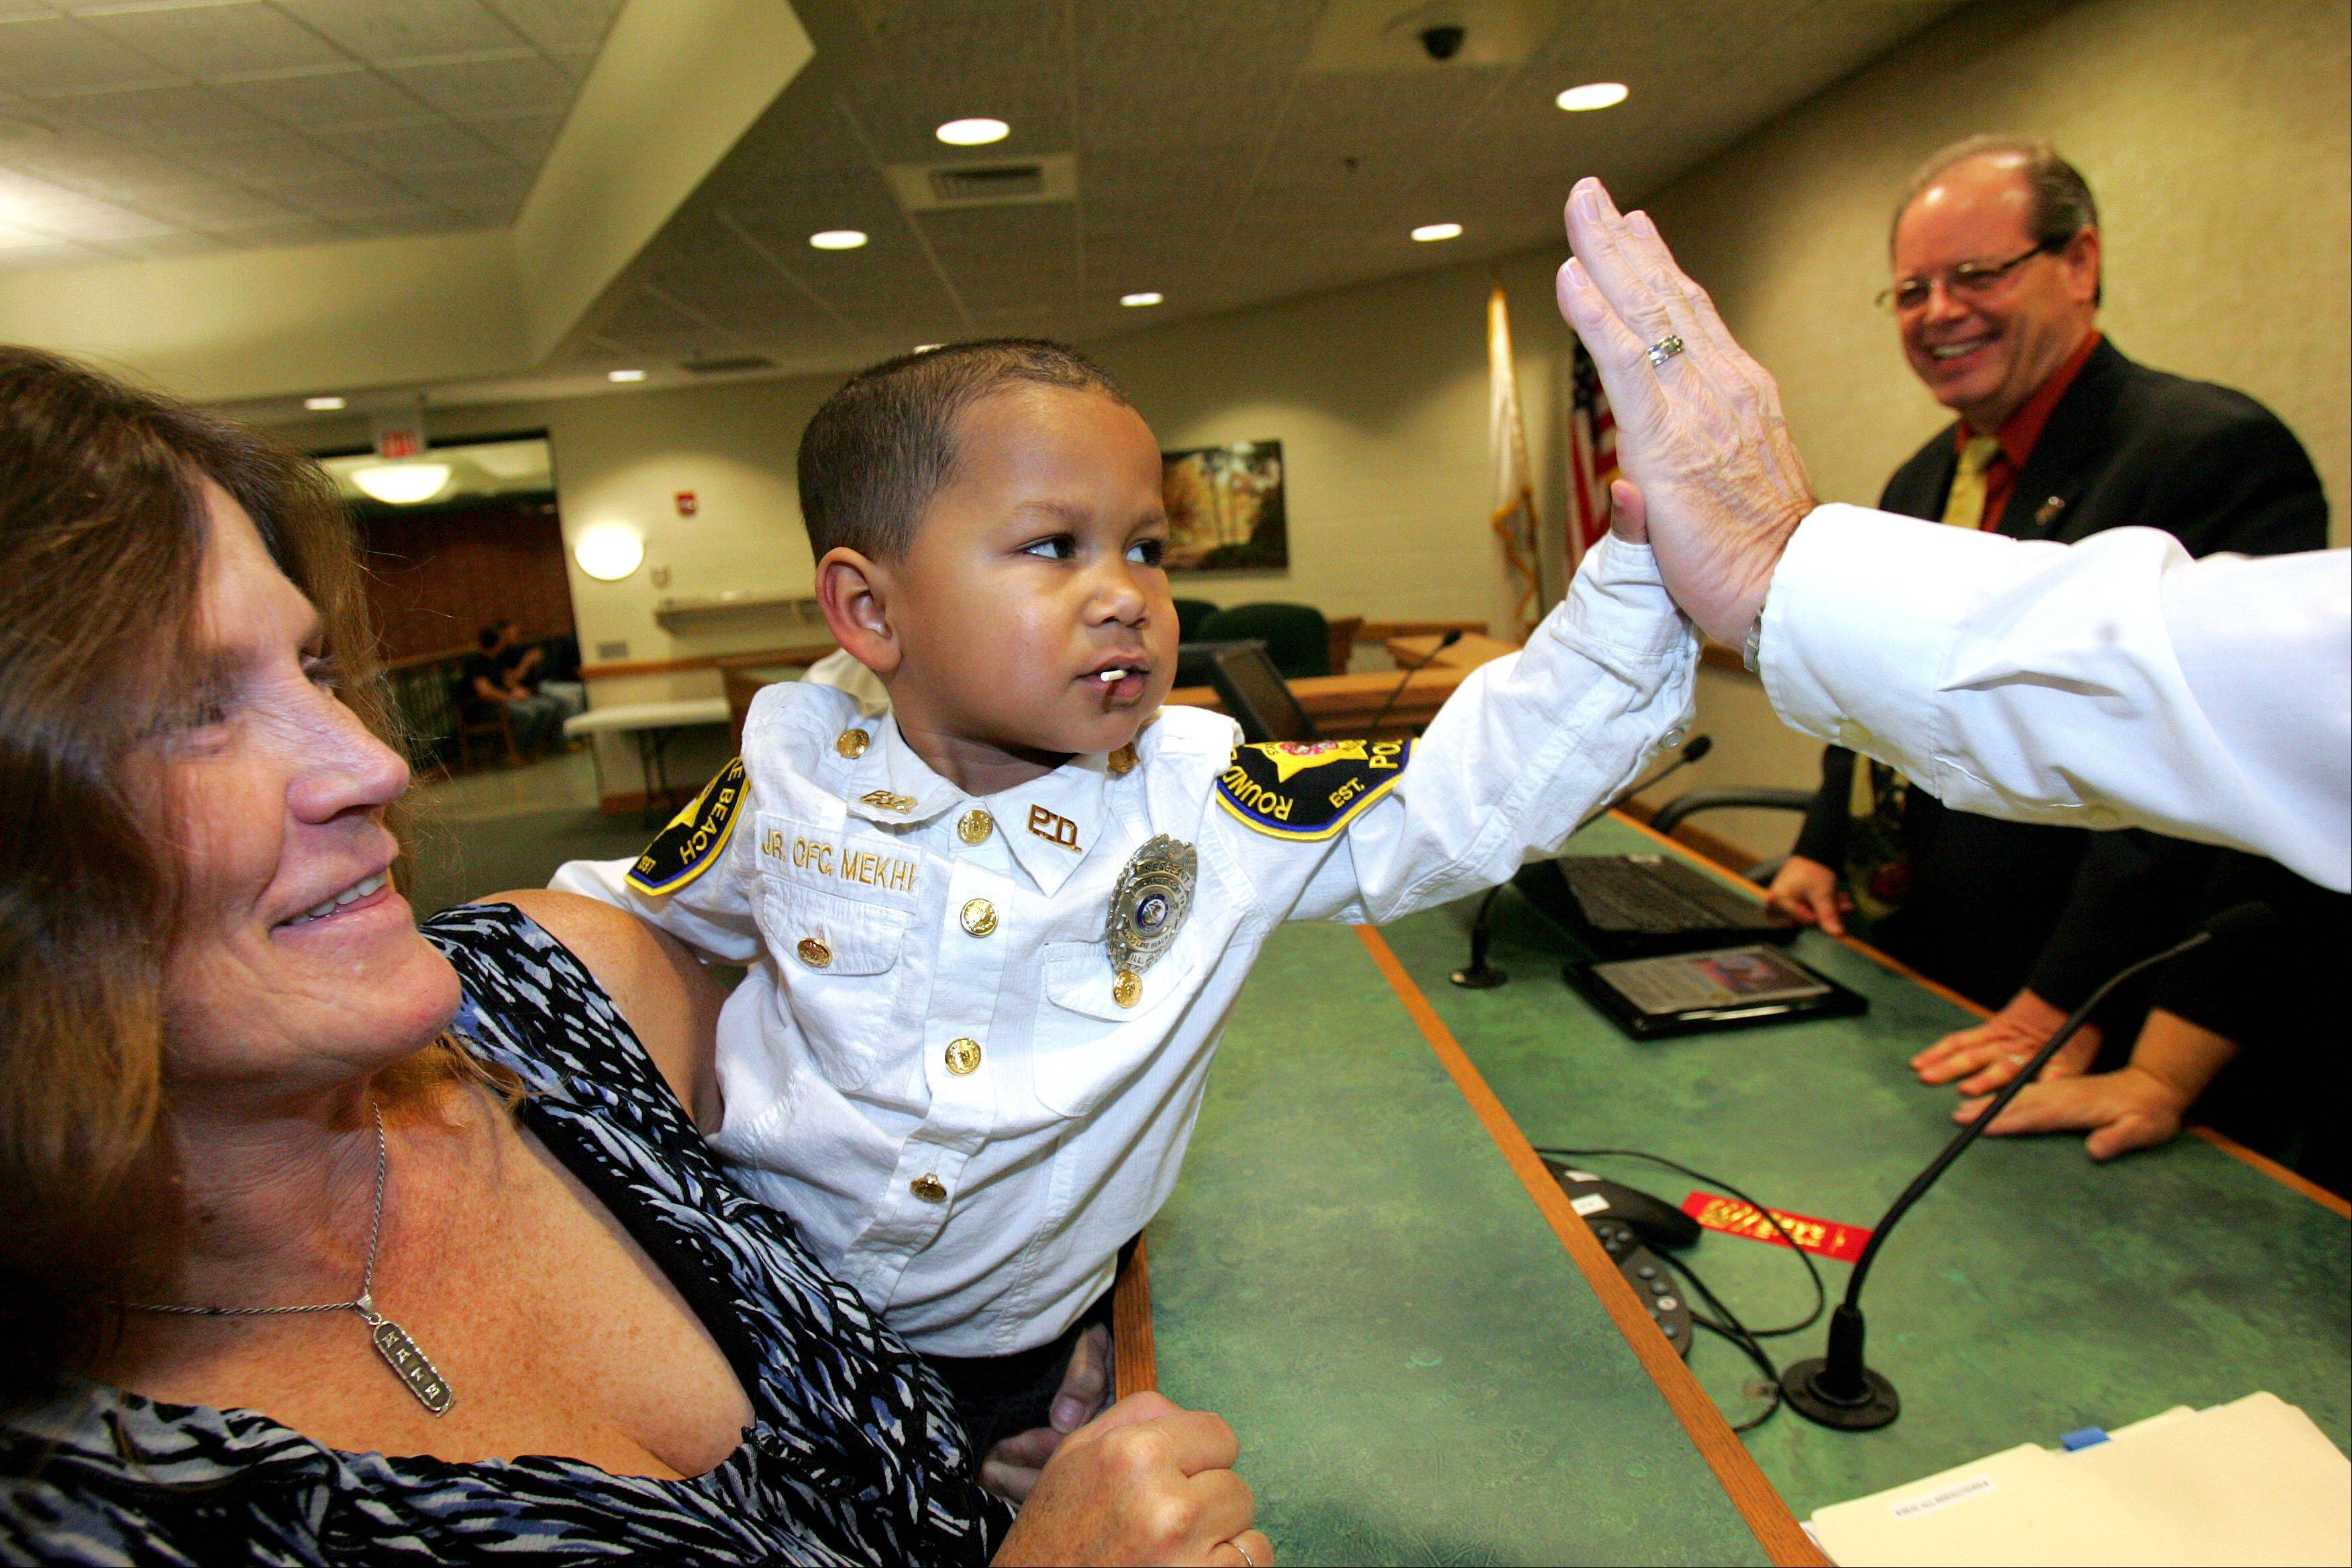 Mekhi Carter is held by his grandmother, Katie Hoftender, as he high-fives members of the Round Lake Beach village board. The 3½-year-old Antioch Township boy was recognized by village officials as a Junior Round Lake Beach Police Officer as a wish enhancement in conjunction with the Make-A-Wish foundation.